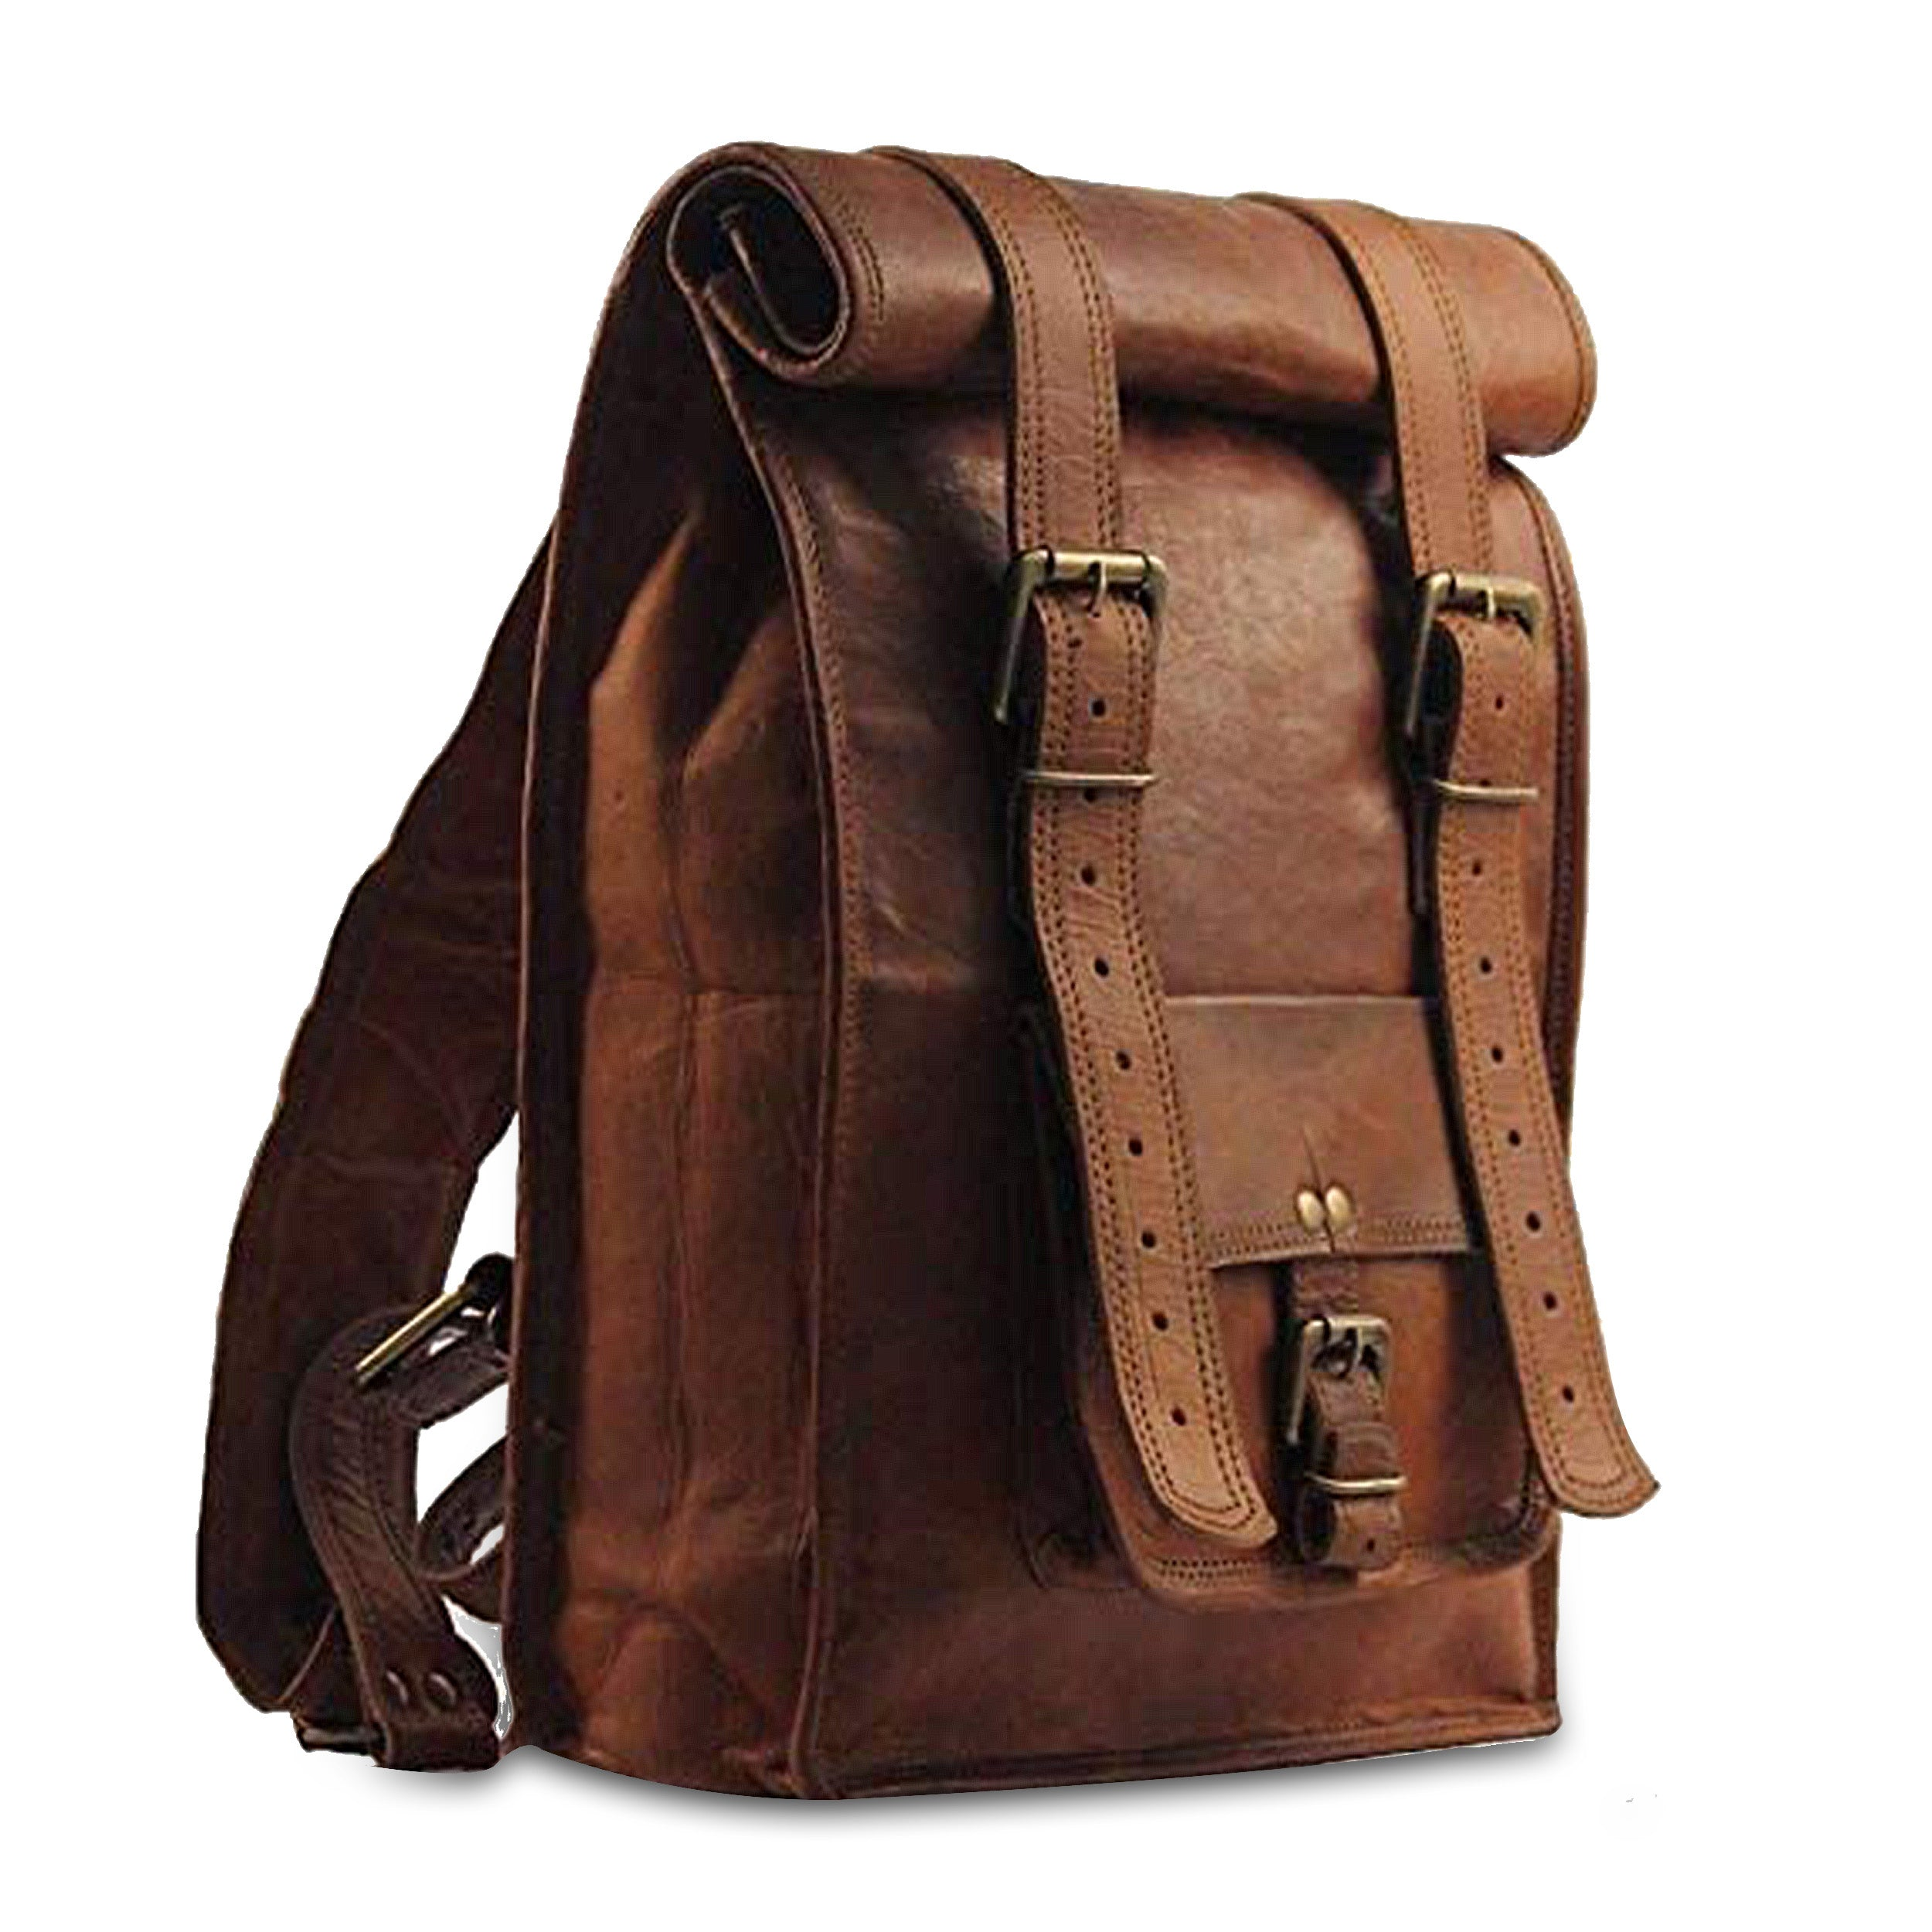 Vintage Roll Top Leather Backpack